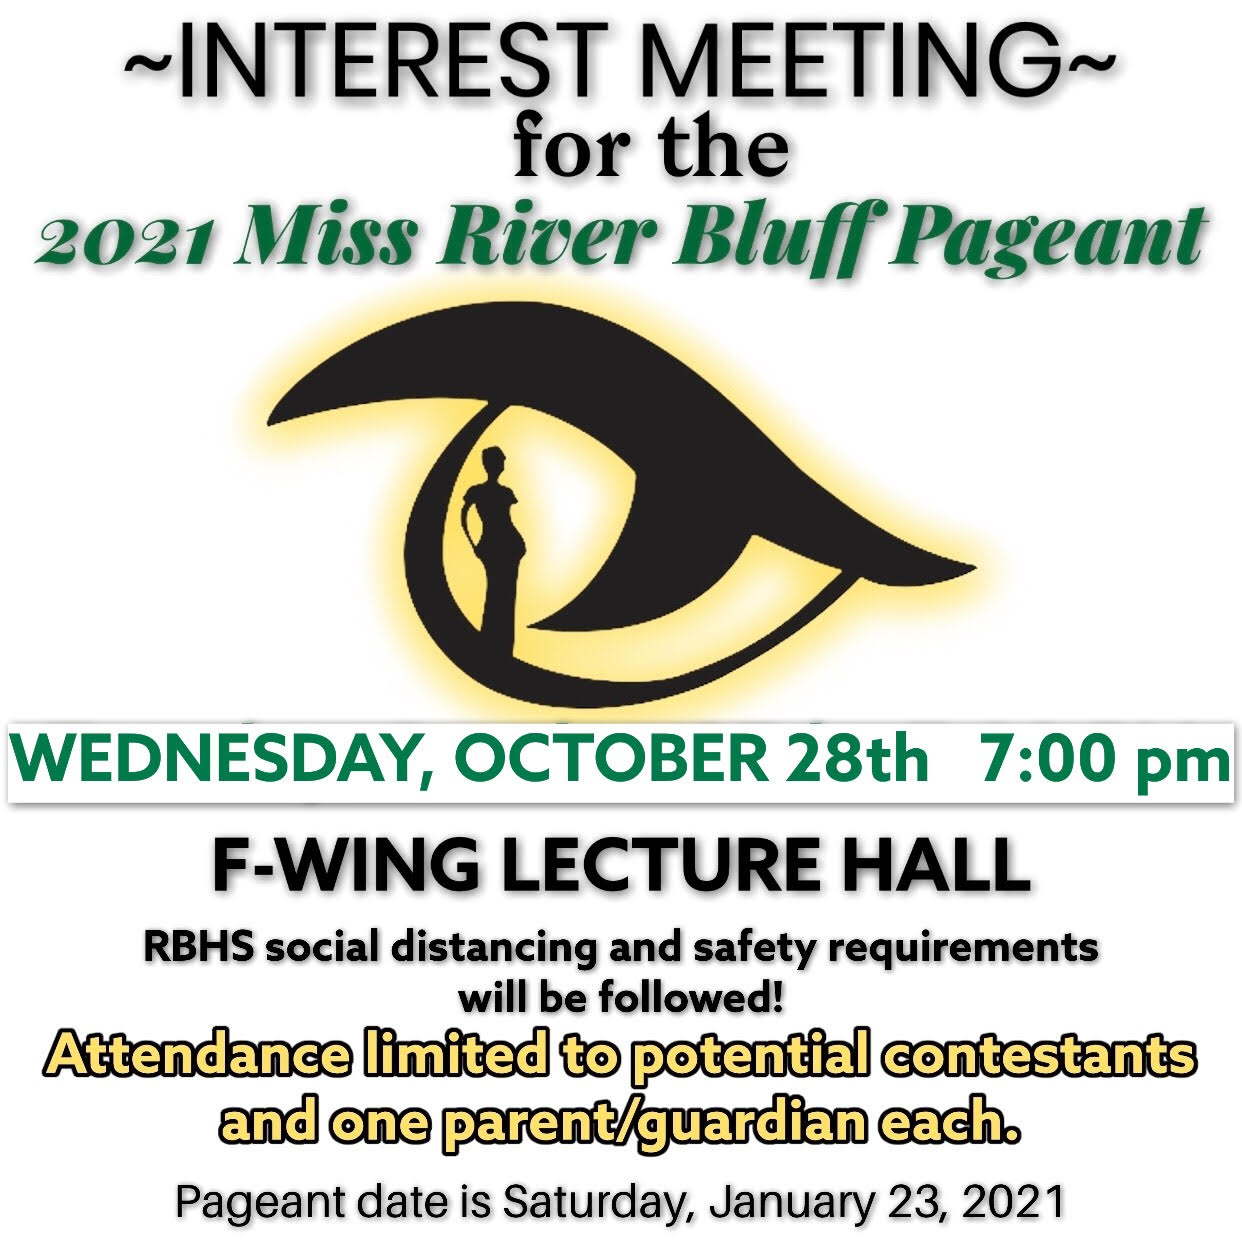 2021 Miss River Bluff Pageant Interest Meeting Announced